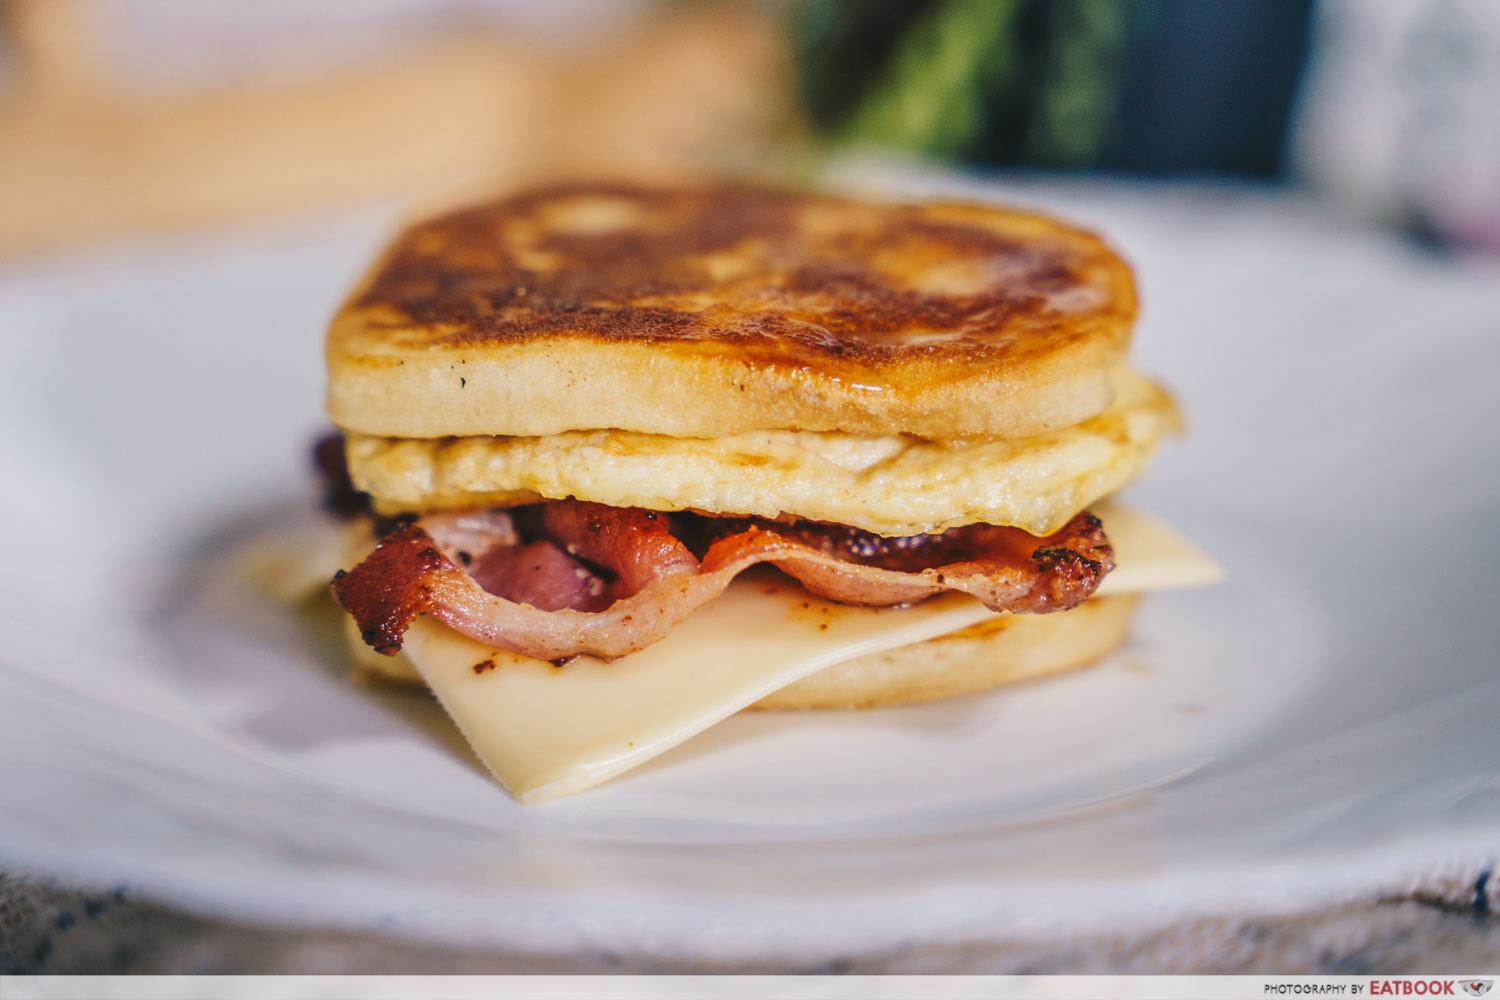 Sandwich Recipes - Breakfast McGriddles Intro